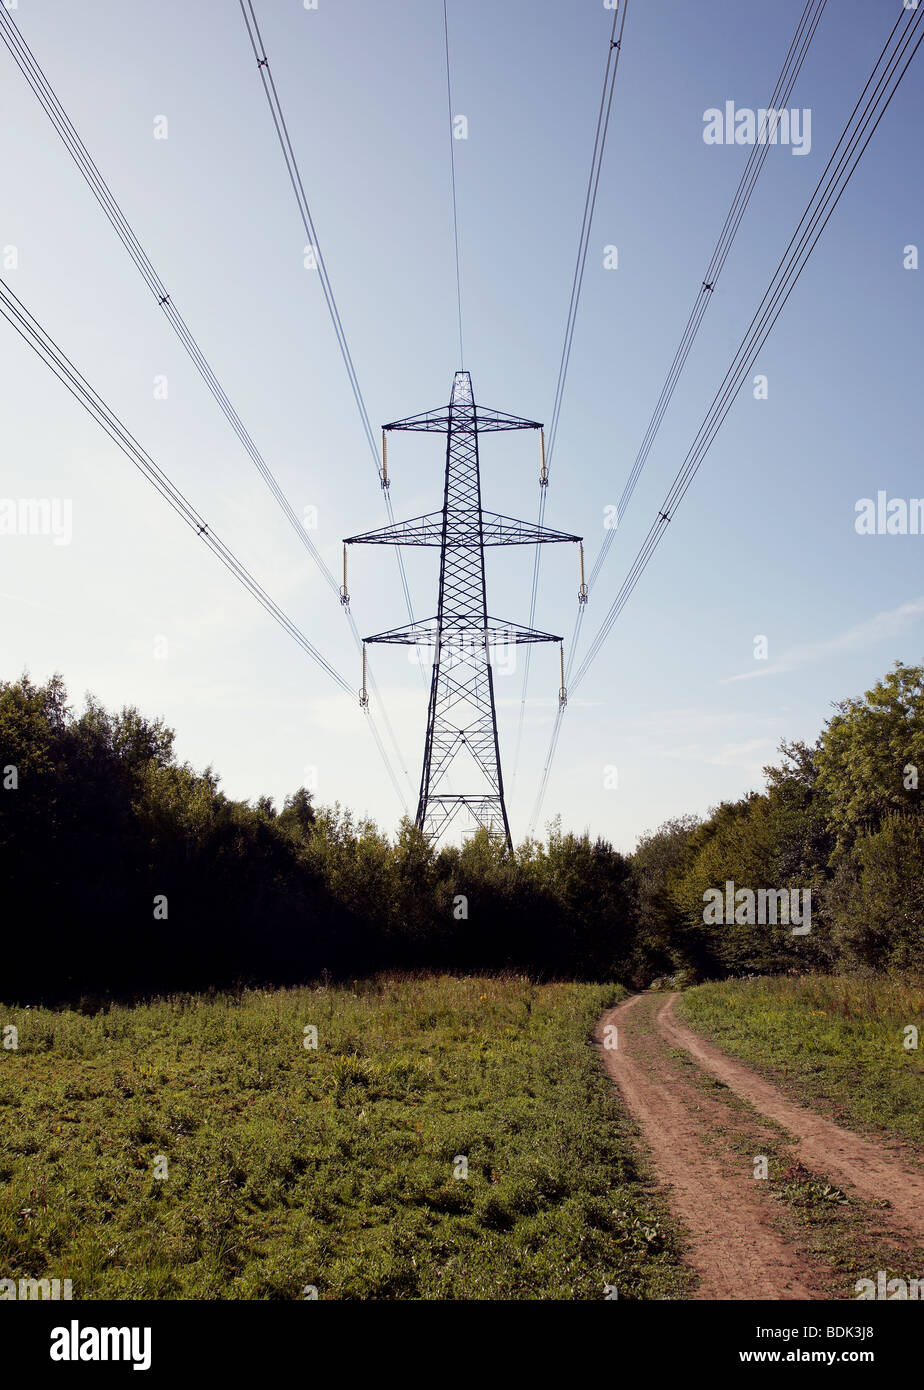 Electricity power supply passing through farm next to farm track - Stock Image